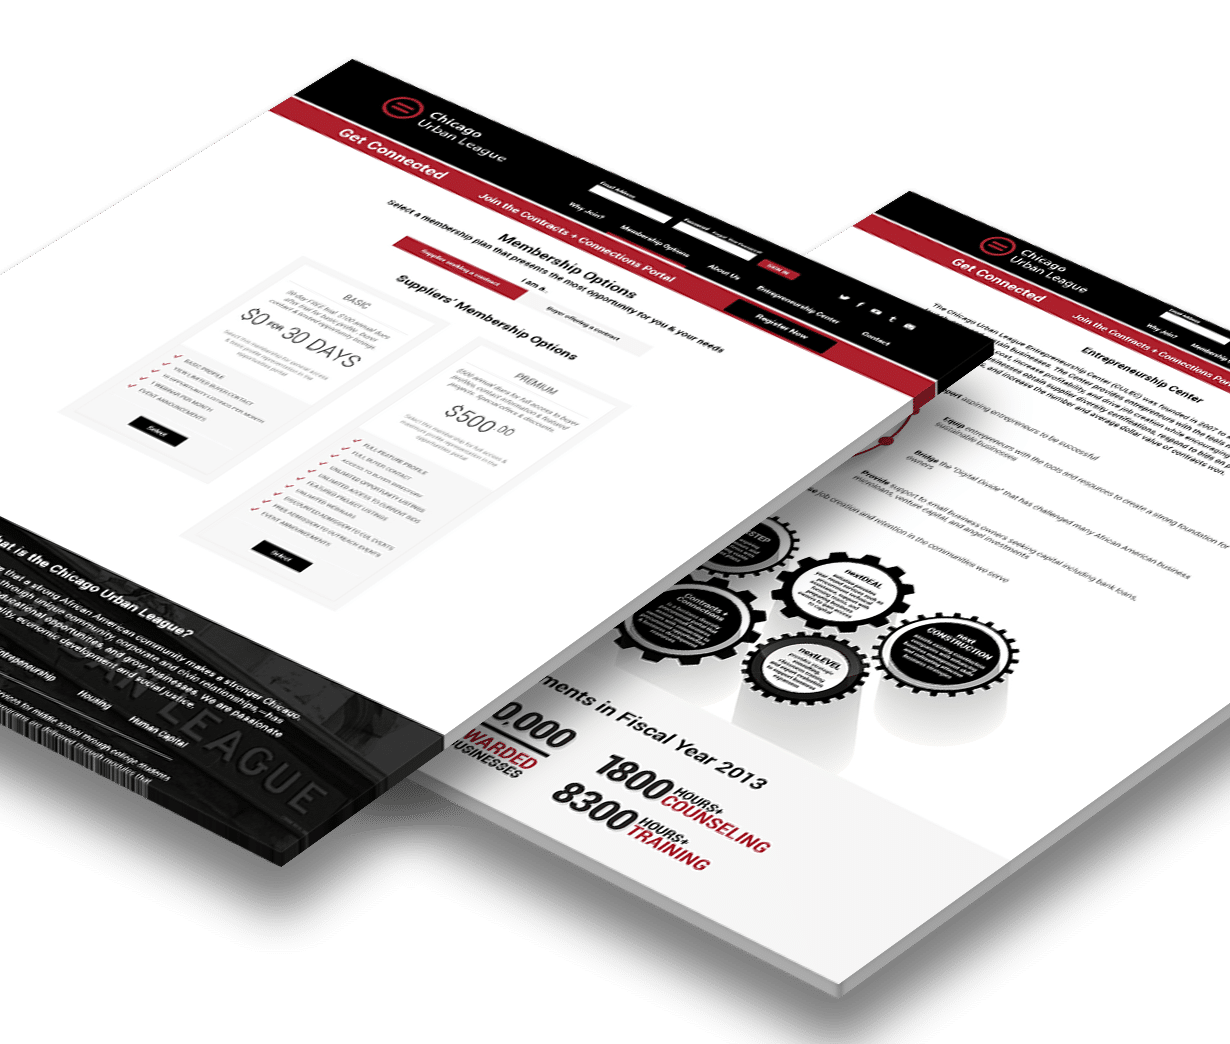 Chicago Urban League Procurement Portal Web Design